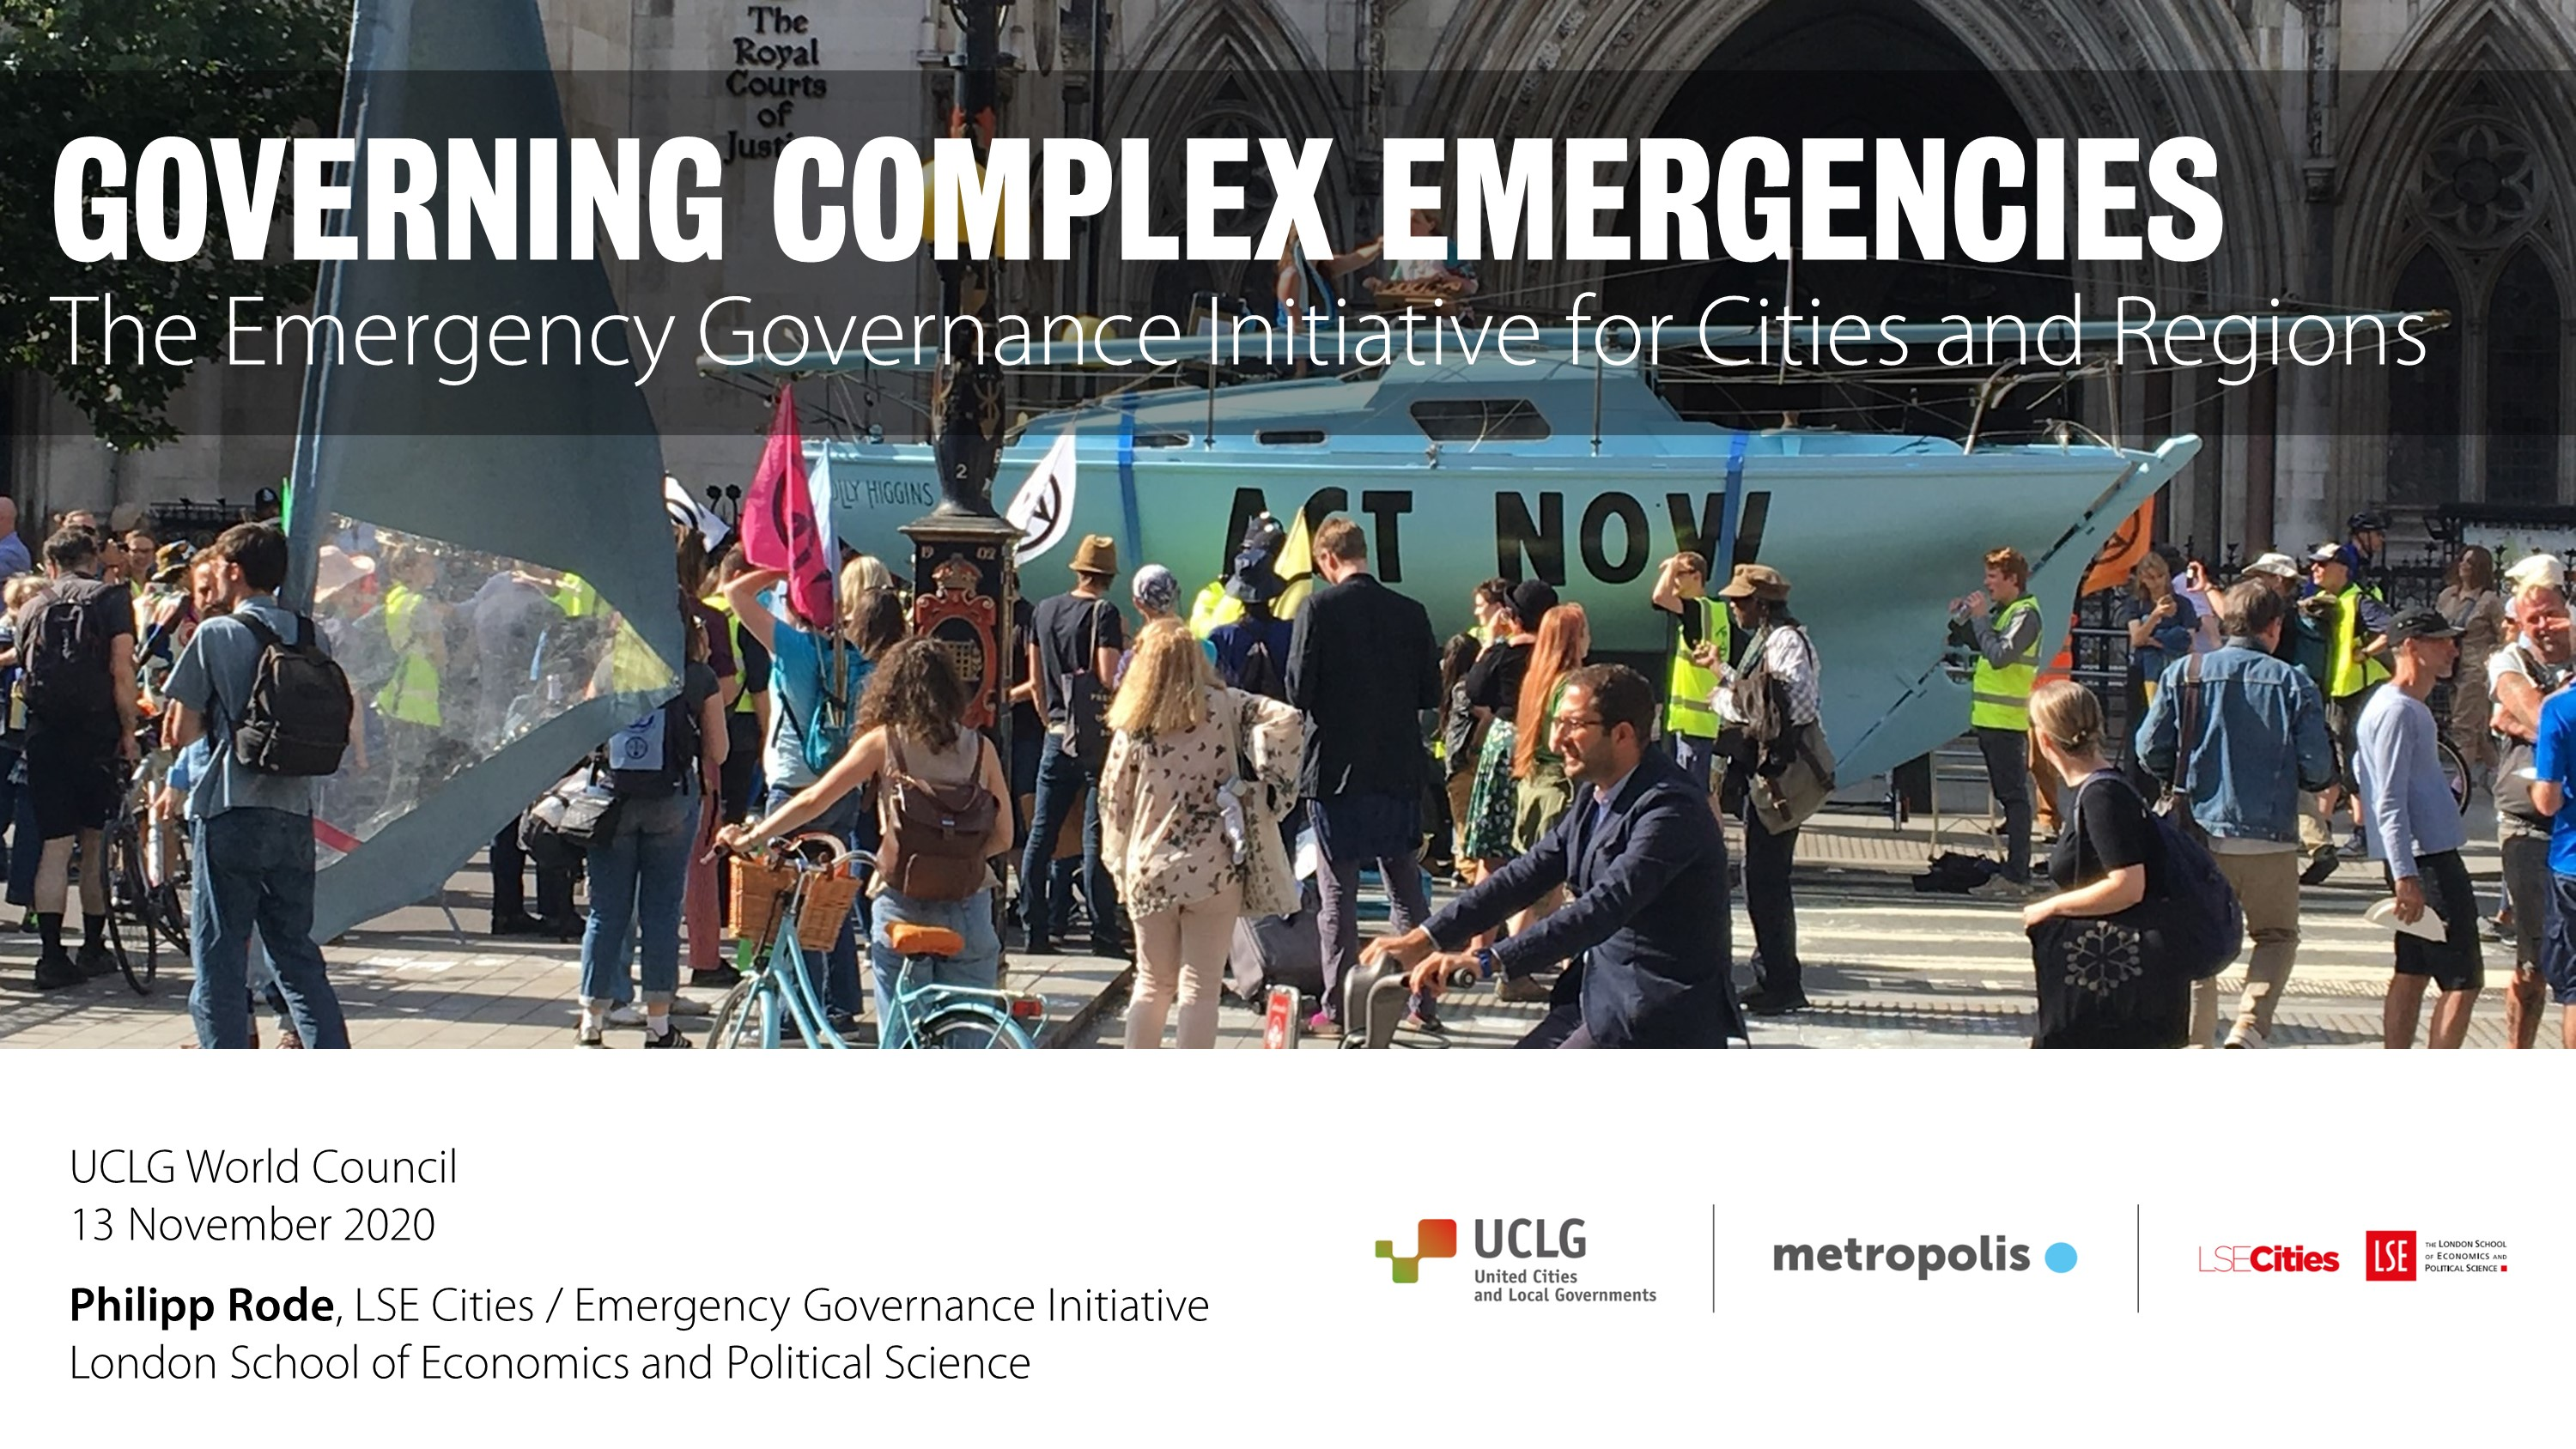 Watch Philipp Rode's Presentation on Governing Complex Emergencies